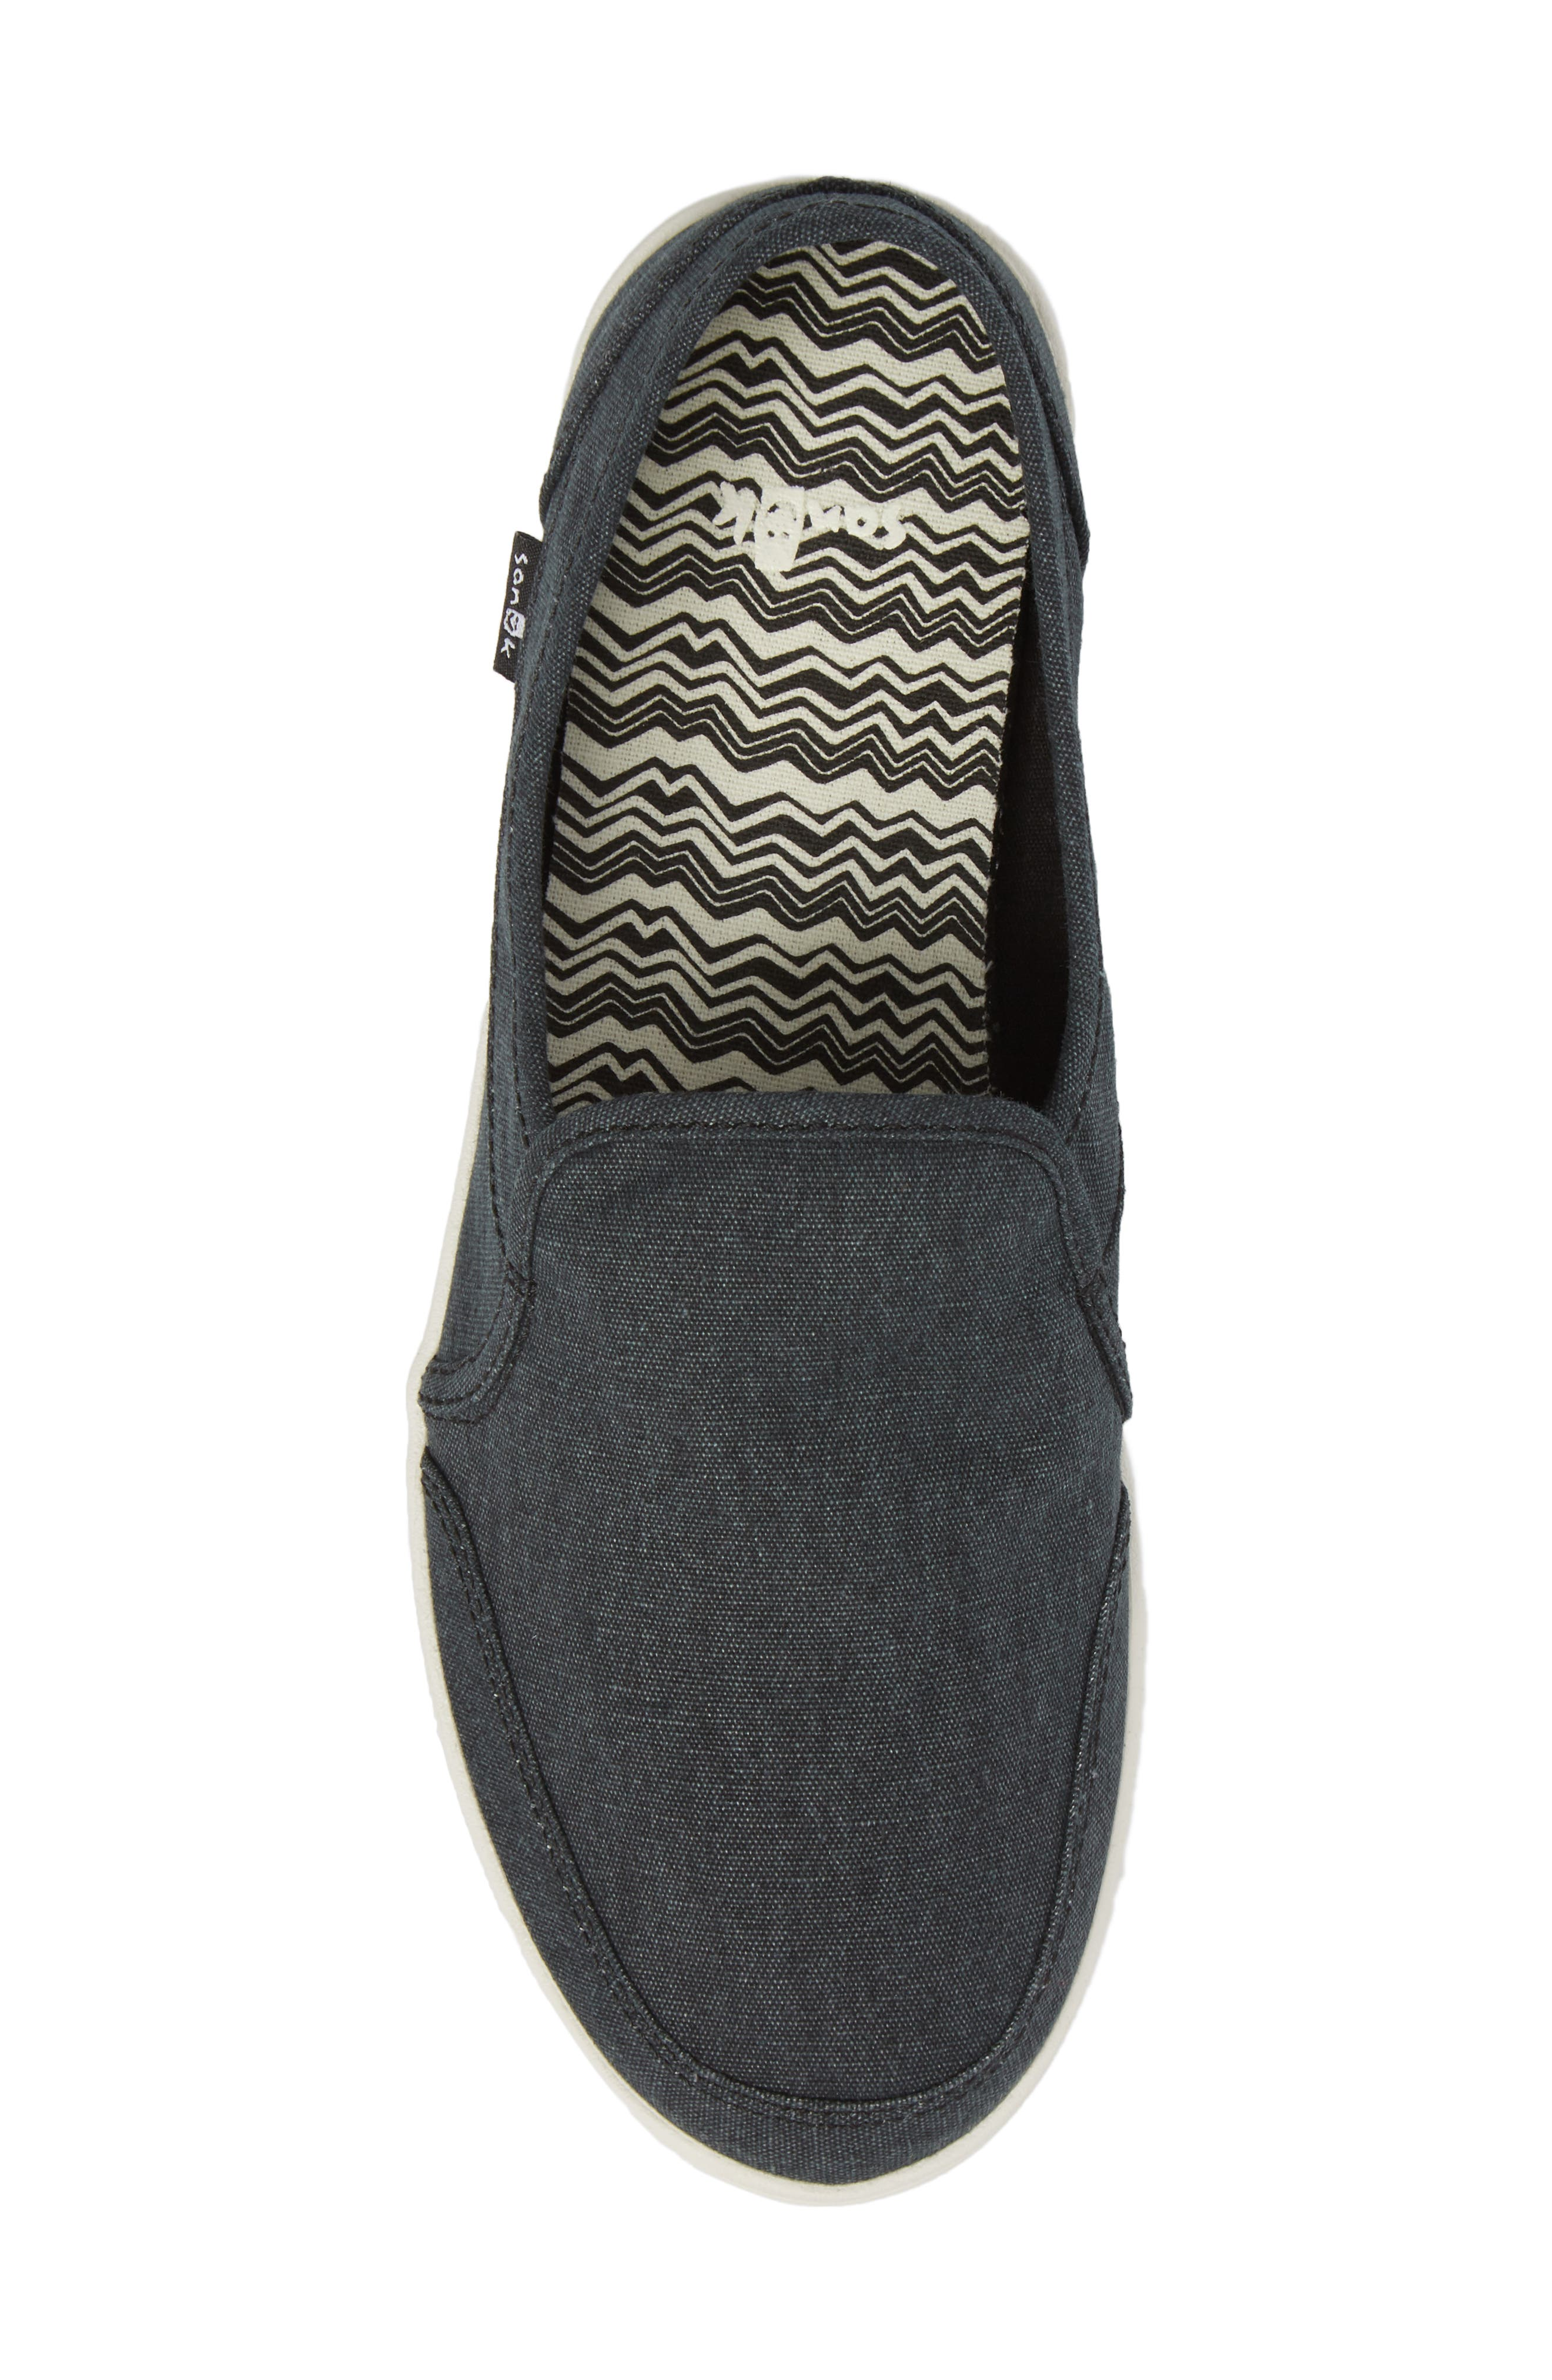 Pair O Dice Slip-On,                             Alternate thumbnail 5, color,                             WASHED BLACK